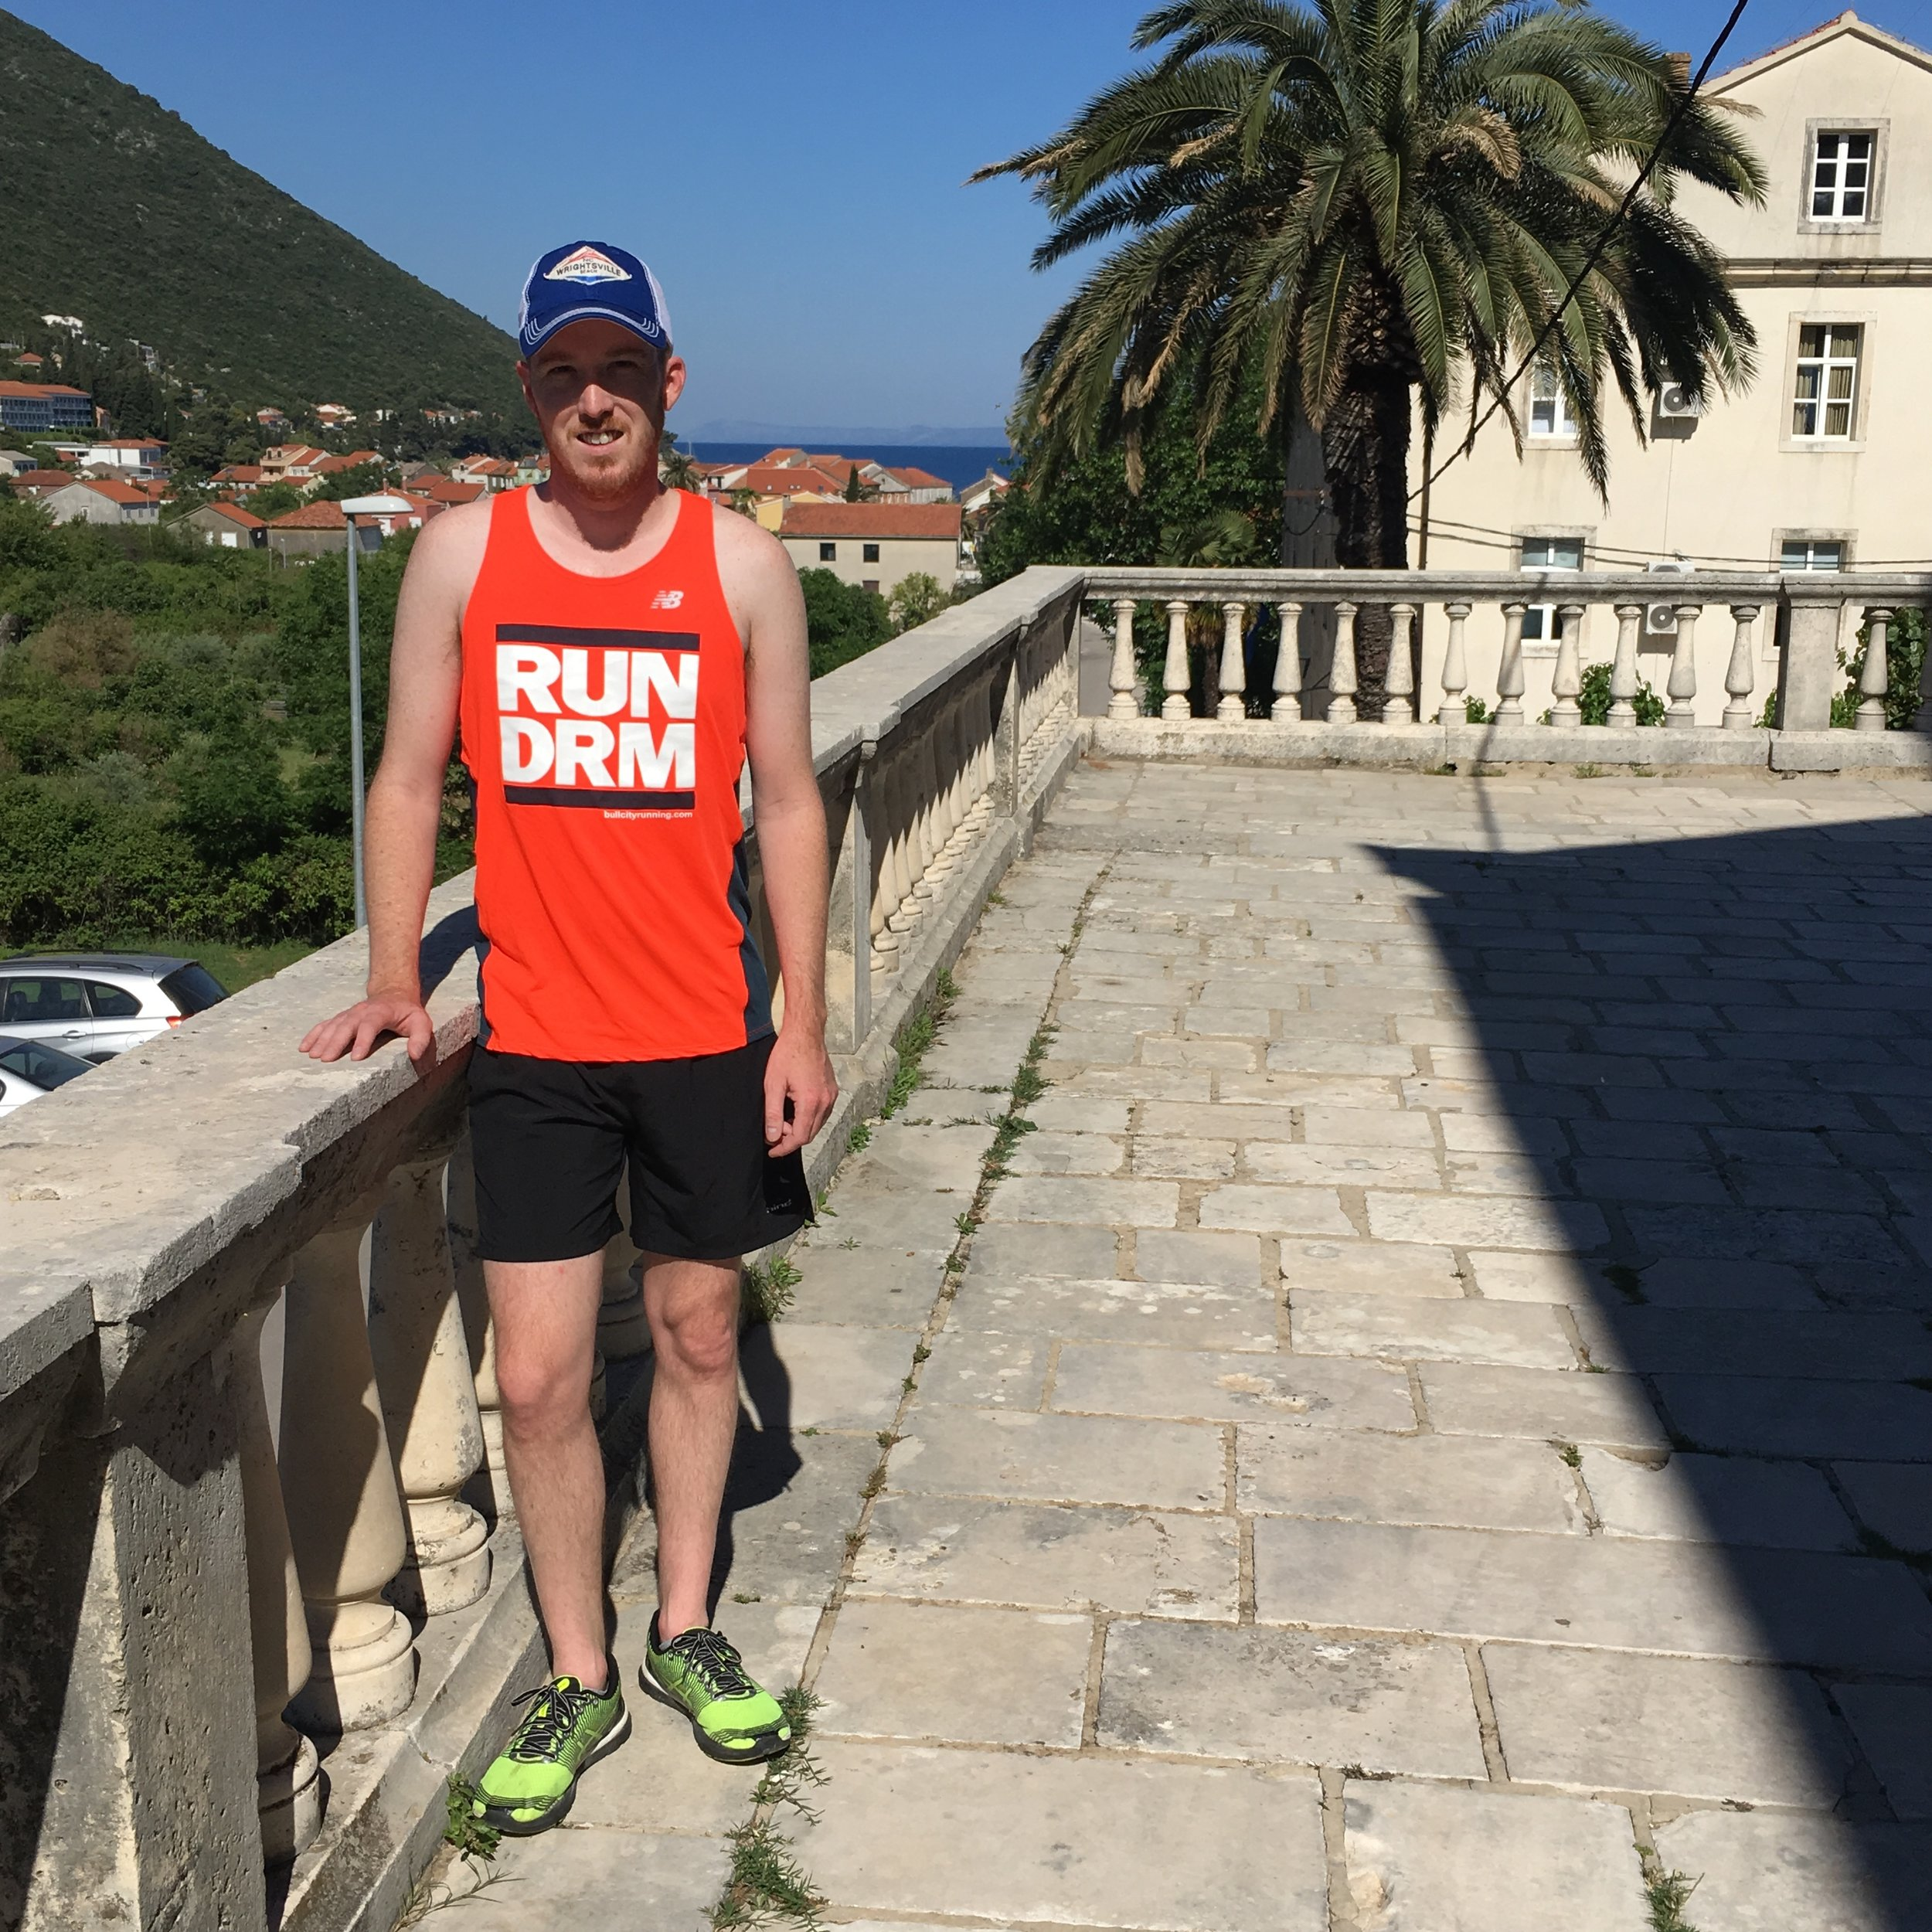 My morning routine travels well - post-run in Trpanj, Croatia.